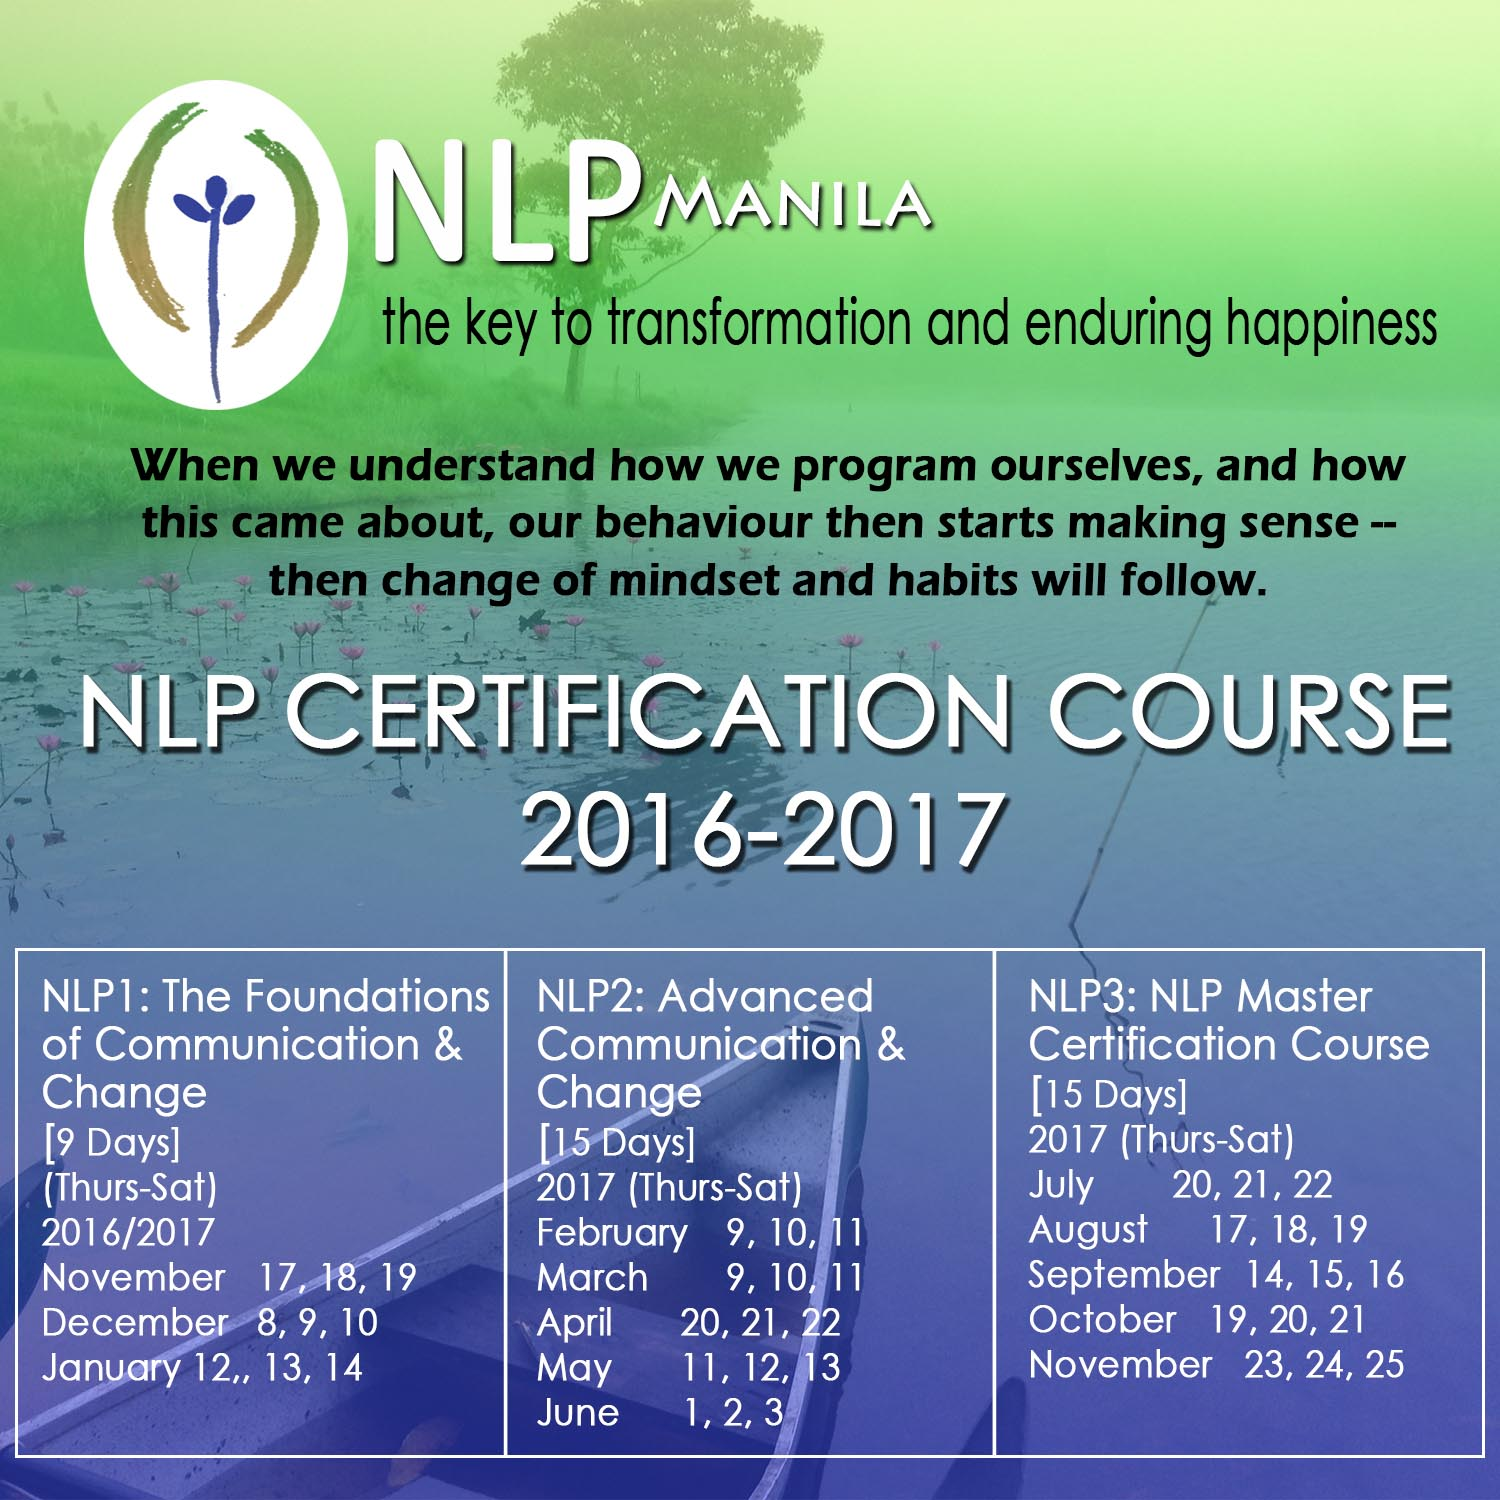 Nlp Manila Certification Courses 2016 2017